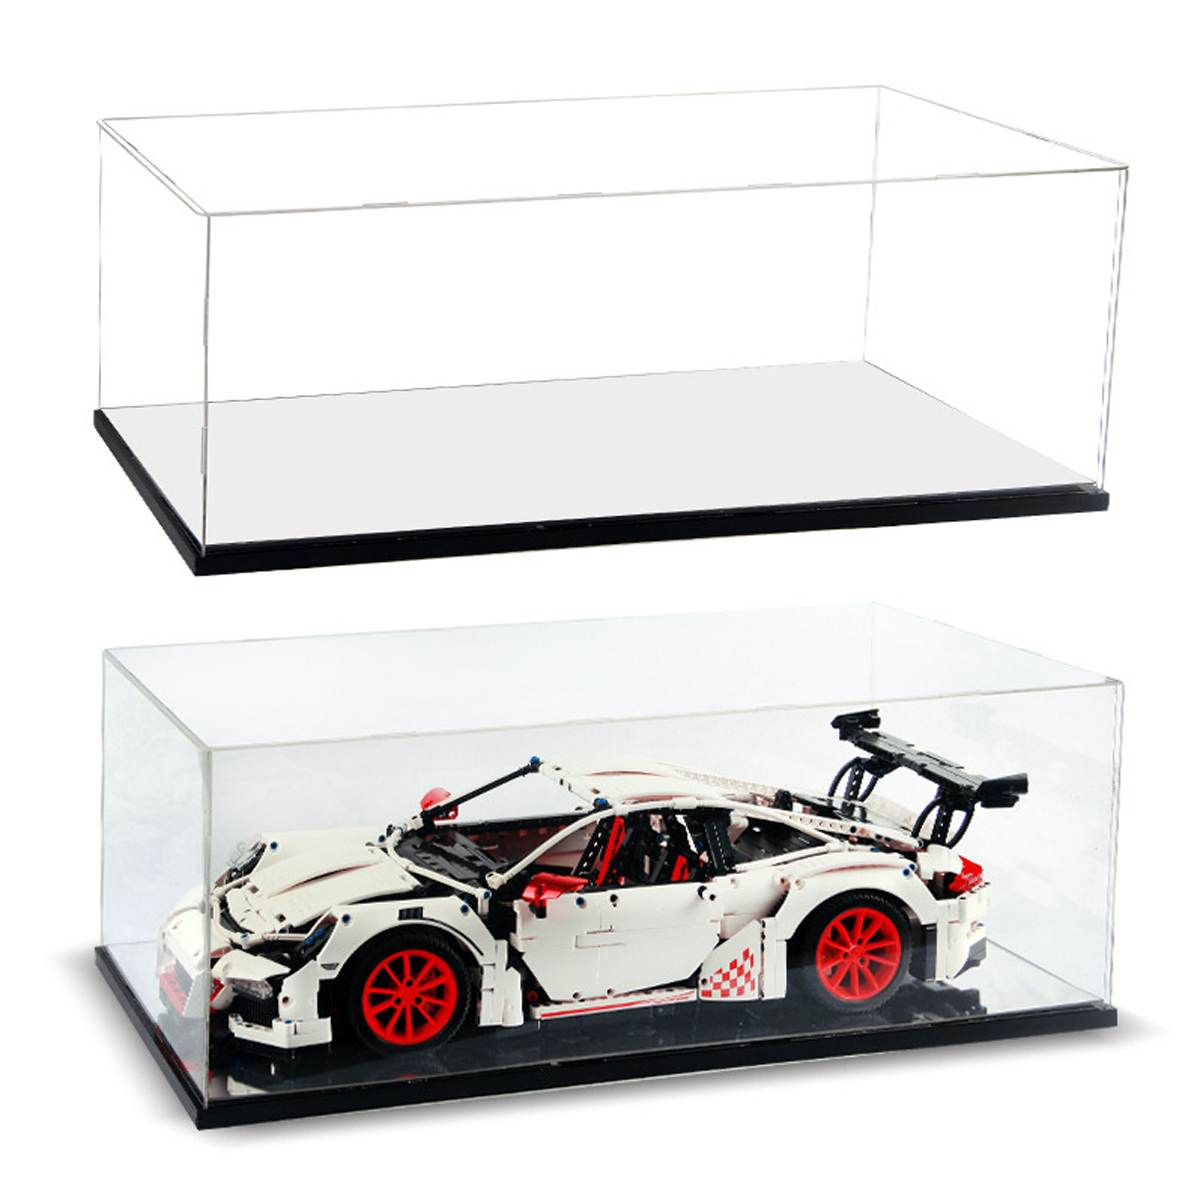 DIY Acrylic Display Case for <font><b>Lego</b></font> <font><b>42056</b></font> for Bugatti Chiron for Porsche 911 GT3 RS <font><b>Technic</b></font> Series Blocks ( Model not Included) image